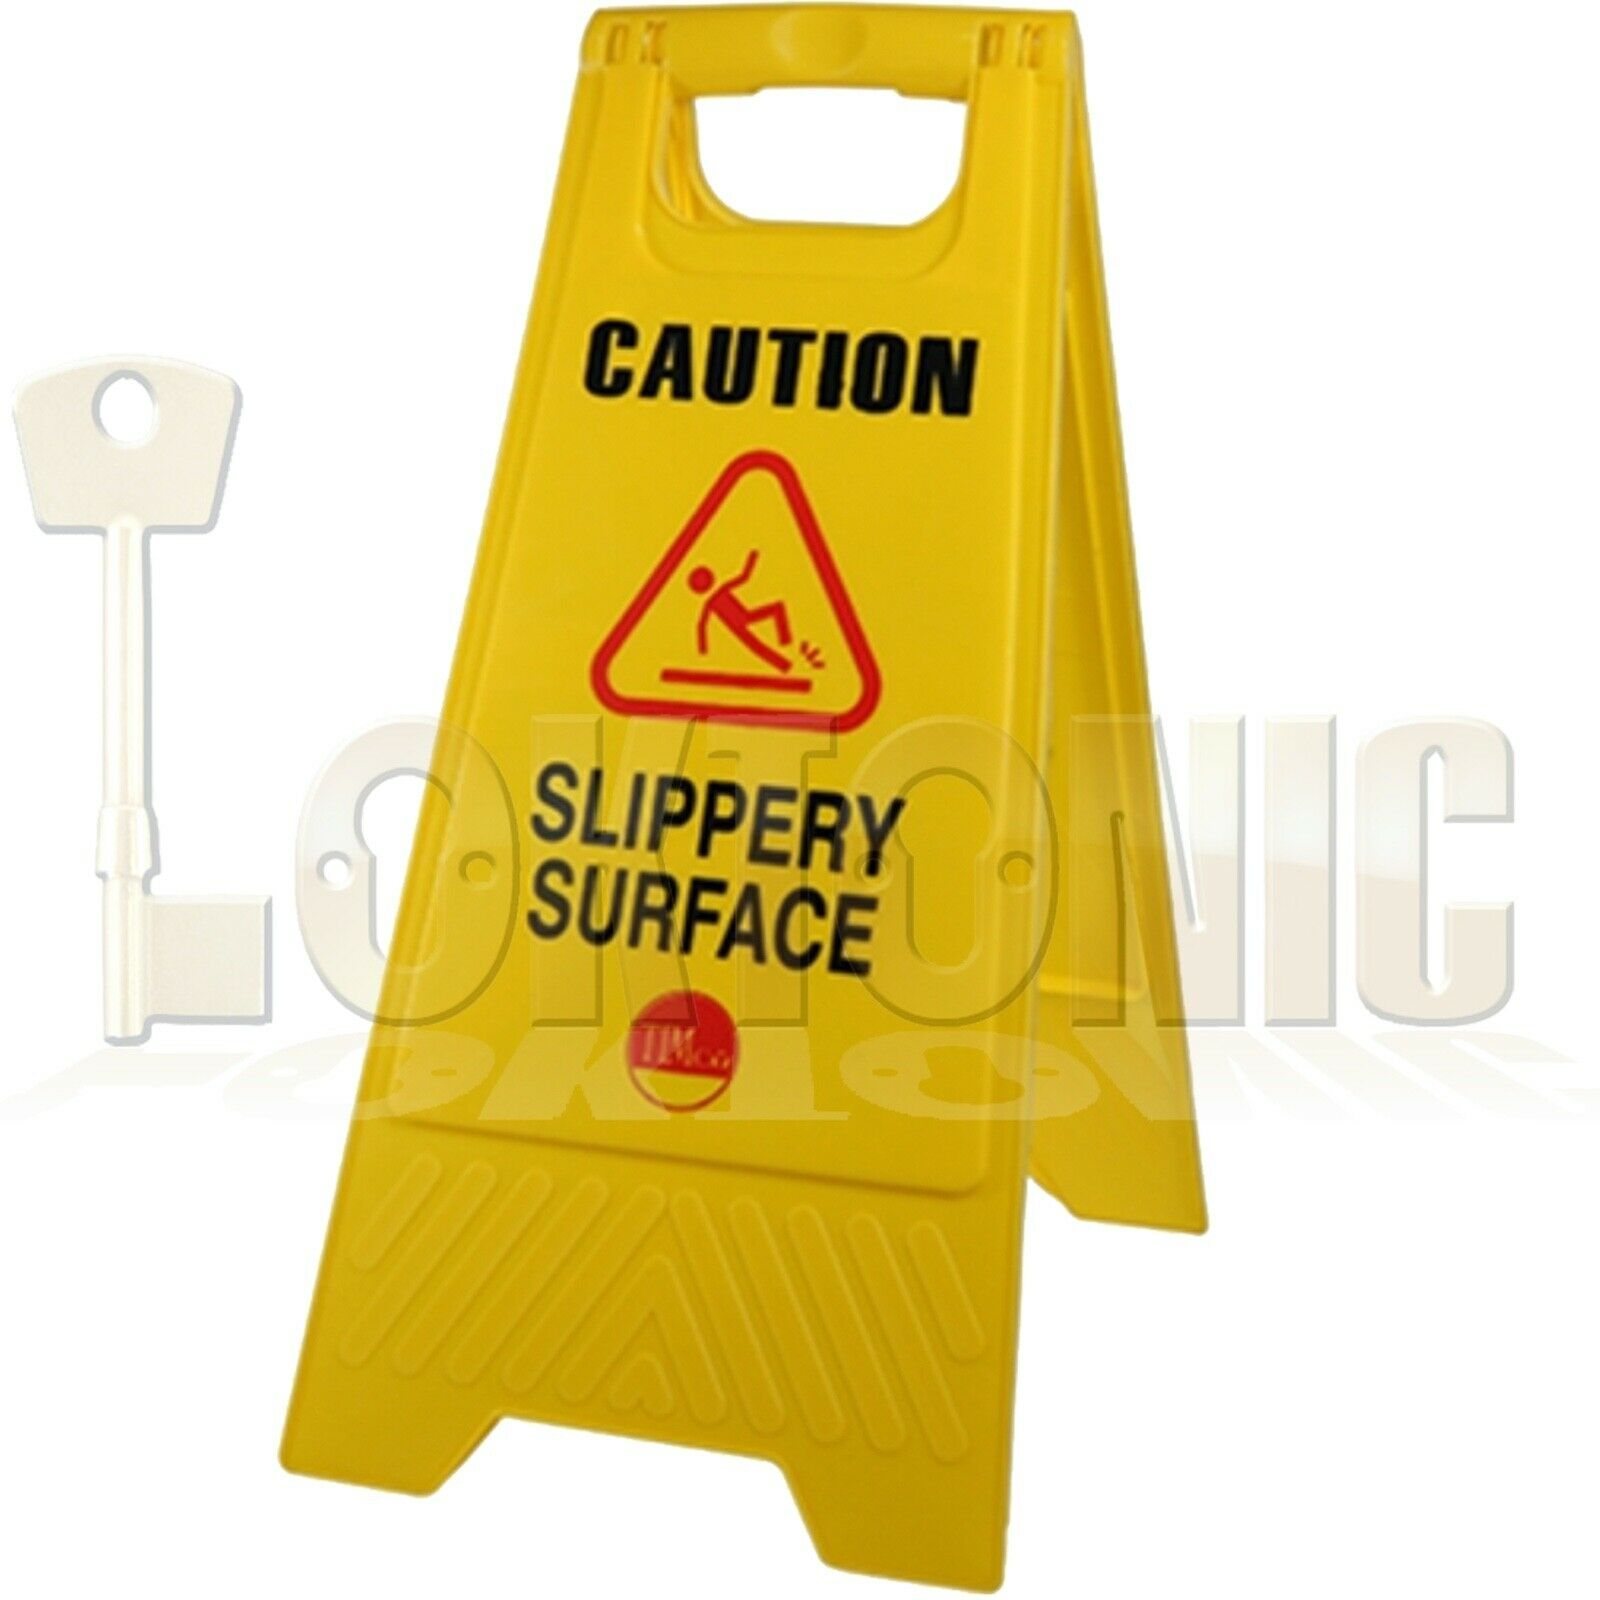 Professional Caution A-Frame Safety Warning Sign Slippery Surface 610 x 300 x 30